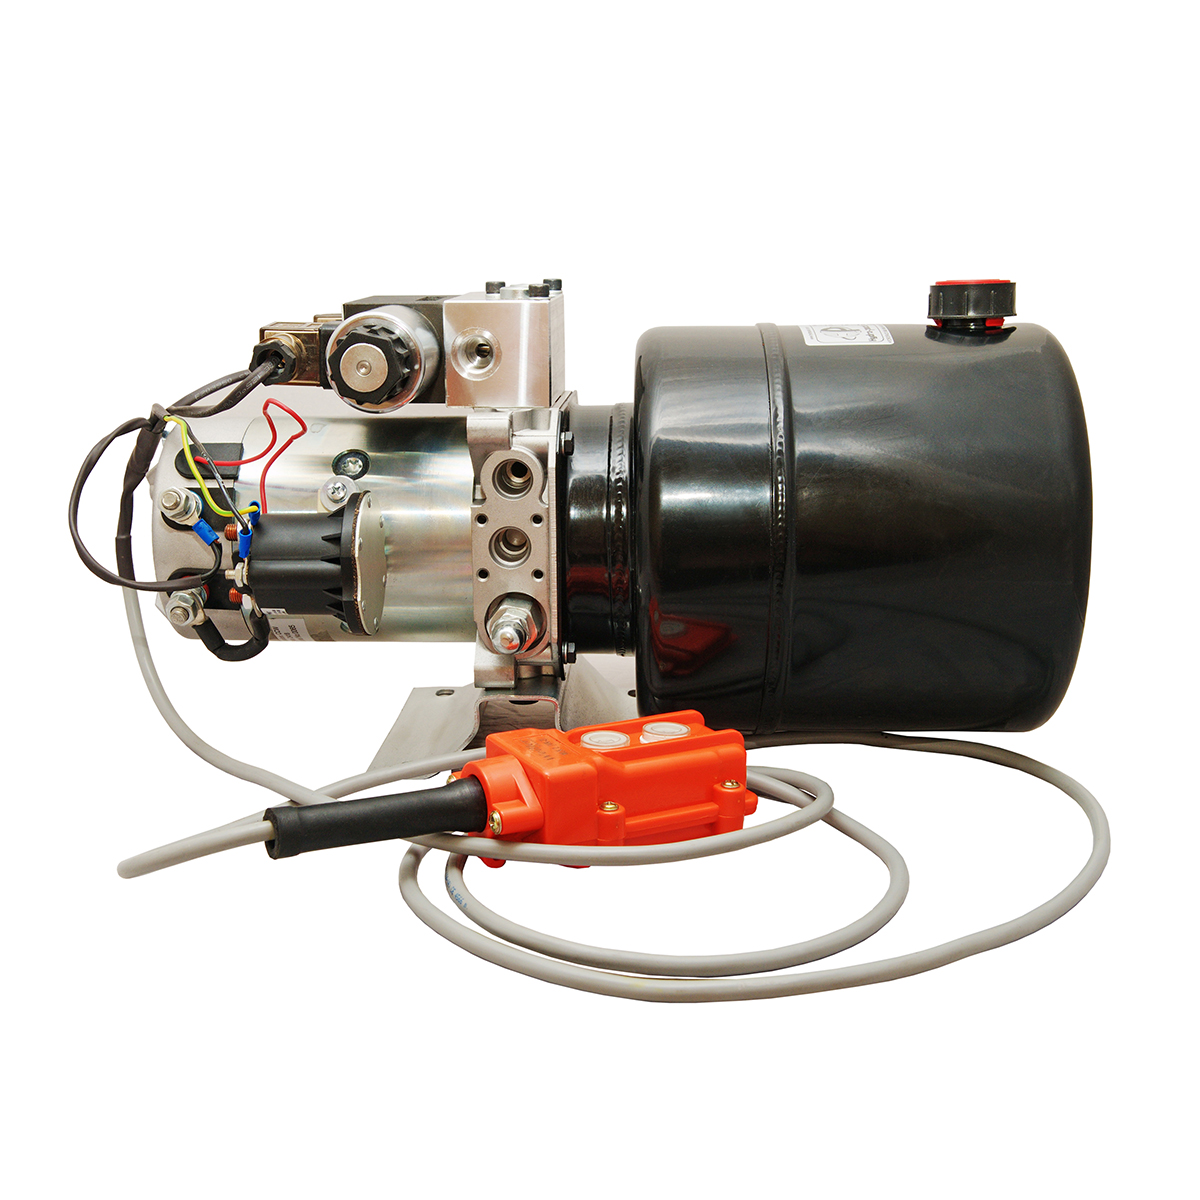 double acting 8 quarts hydraulic power unit 12V DC by Hydro-Pack